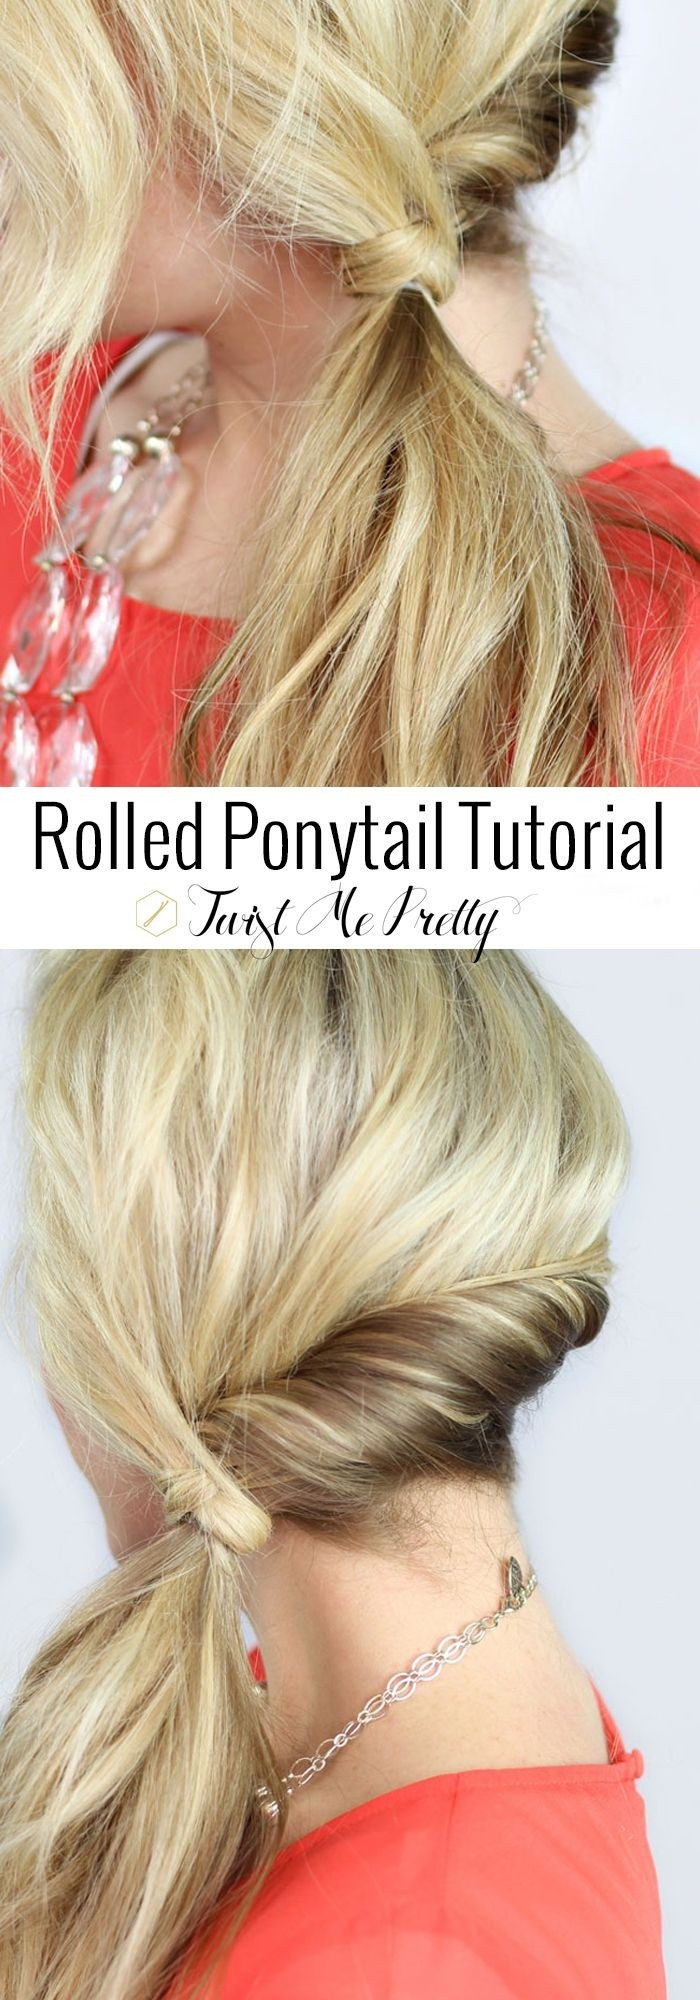 Pretty Easy Hairstyles  15 Cute Everyday Hairstyles 2019 Chic Daily Haircuts for